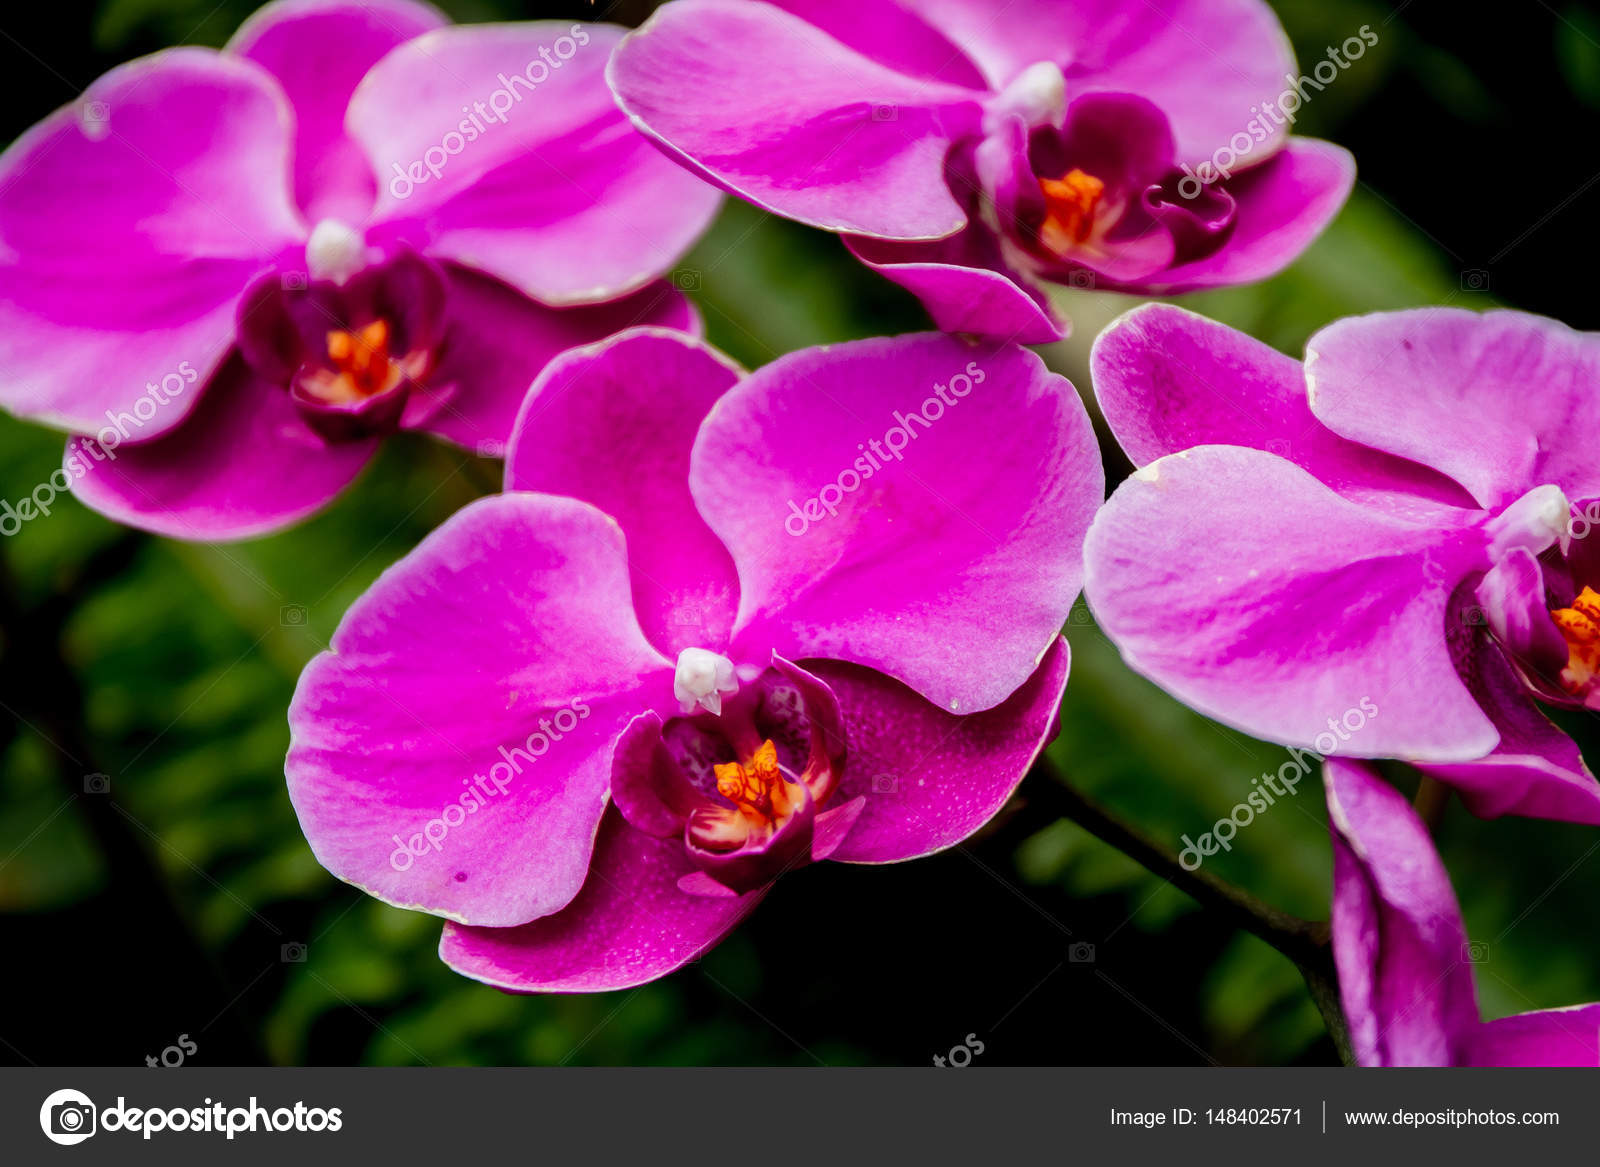 Beautiful orchid flowers stock photo volare2004 148402571 beautiful orchid flowers on natural background photo by volare2004 izmirmasajfo